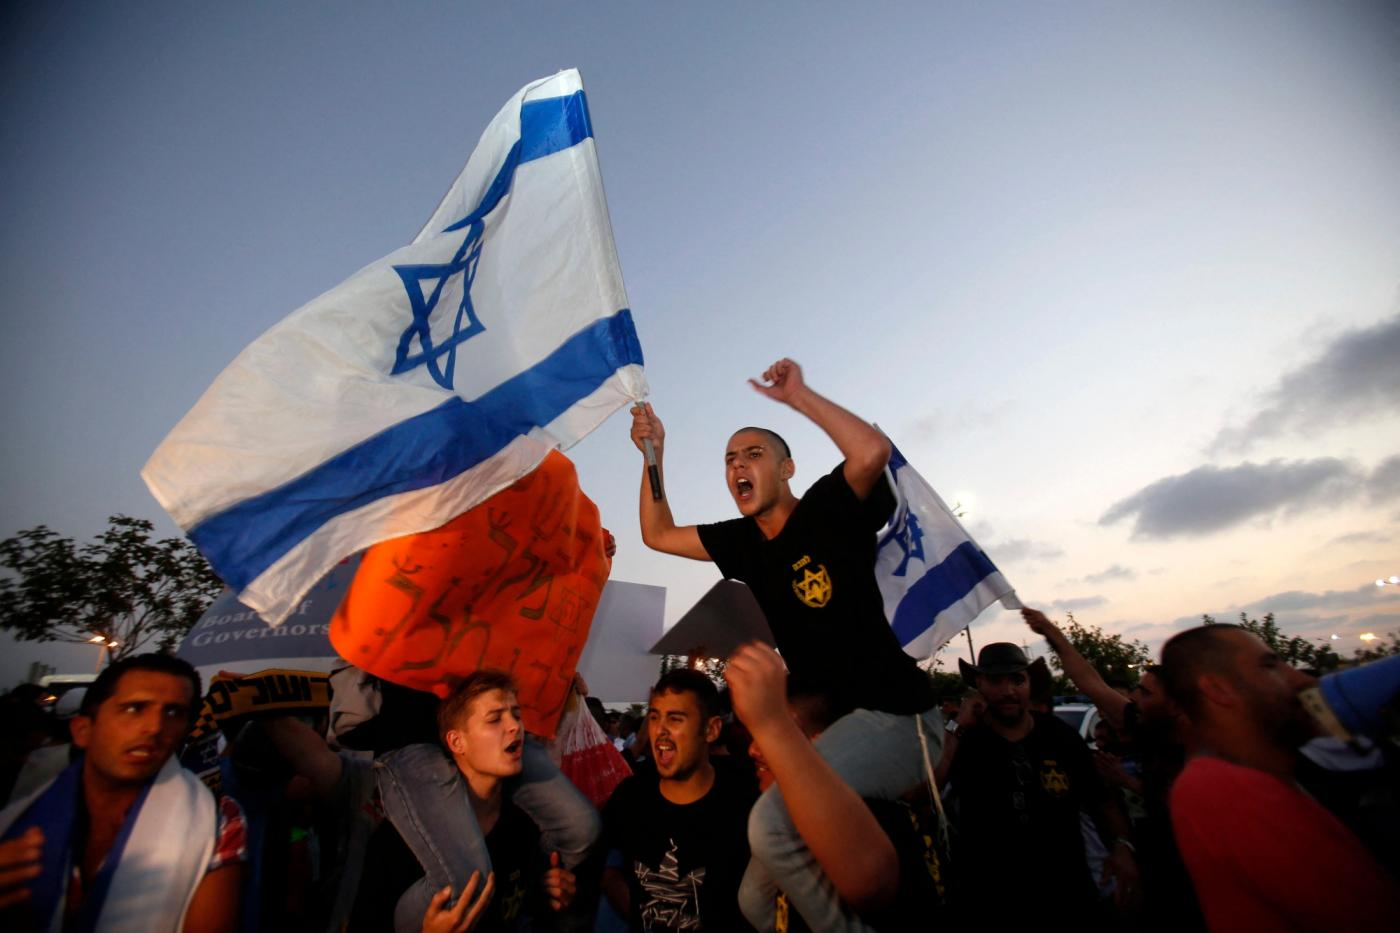 Lehava supporters chant slogans against the wedding of a Palestinian citizen of Israel and a Jewish-Israeli on 17 August 2014 (AFP)